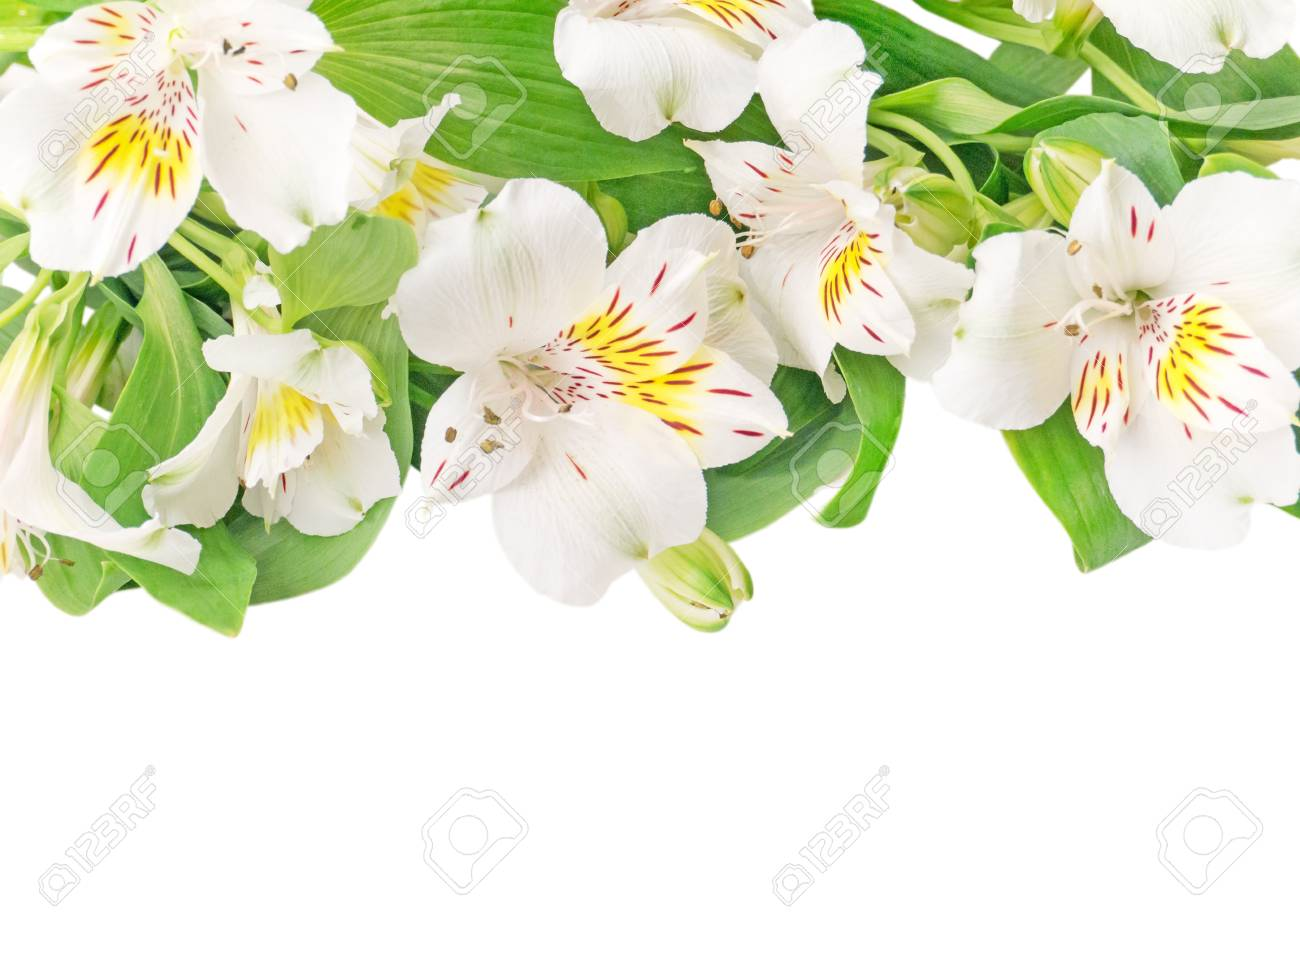 White alstroemeria or peruvian lily flowers isolated on white stock stock photo white alstroemeria or peruvian lily flowers isolated on white mightylinksfo Gallery